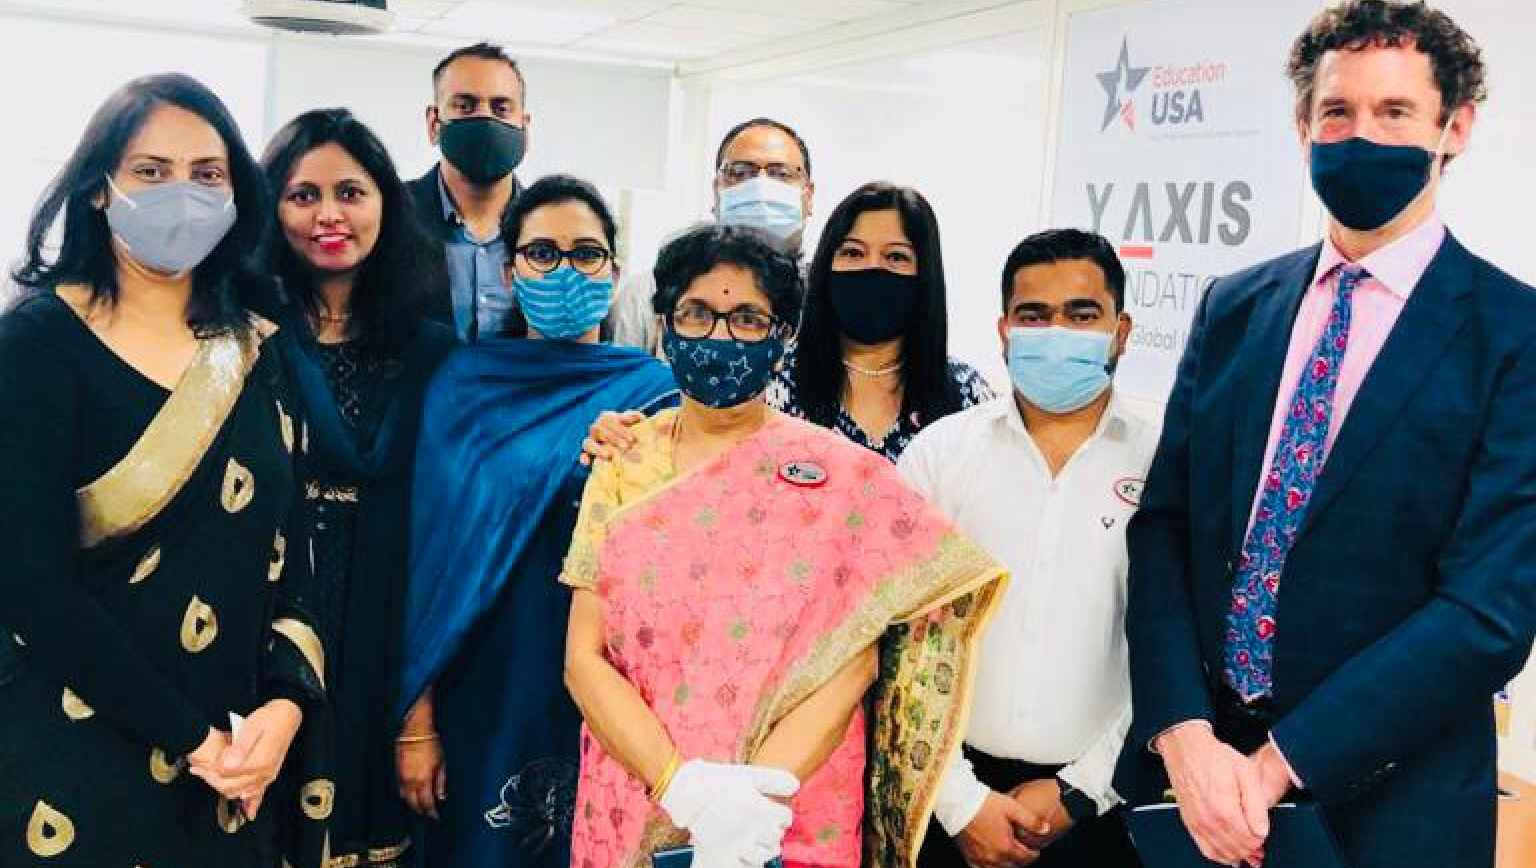 Minister Counsellor, Public Affairars, US Embassy, New Delhi, David Kennedy,with the advisers at Y Axis Foundation Education USA center on the day of inauguration on March 5th, 2021